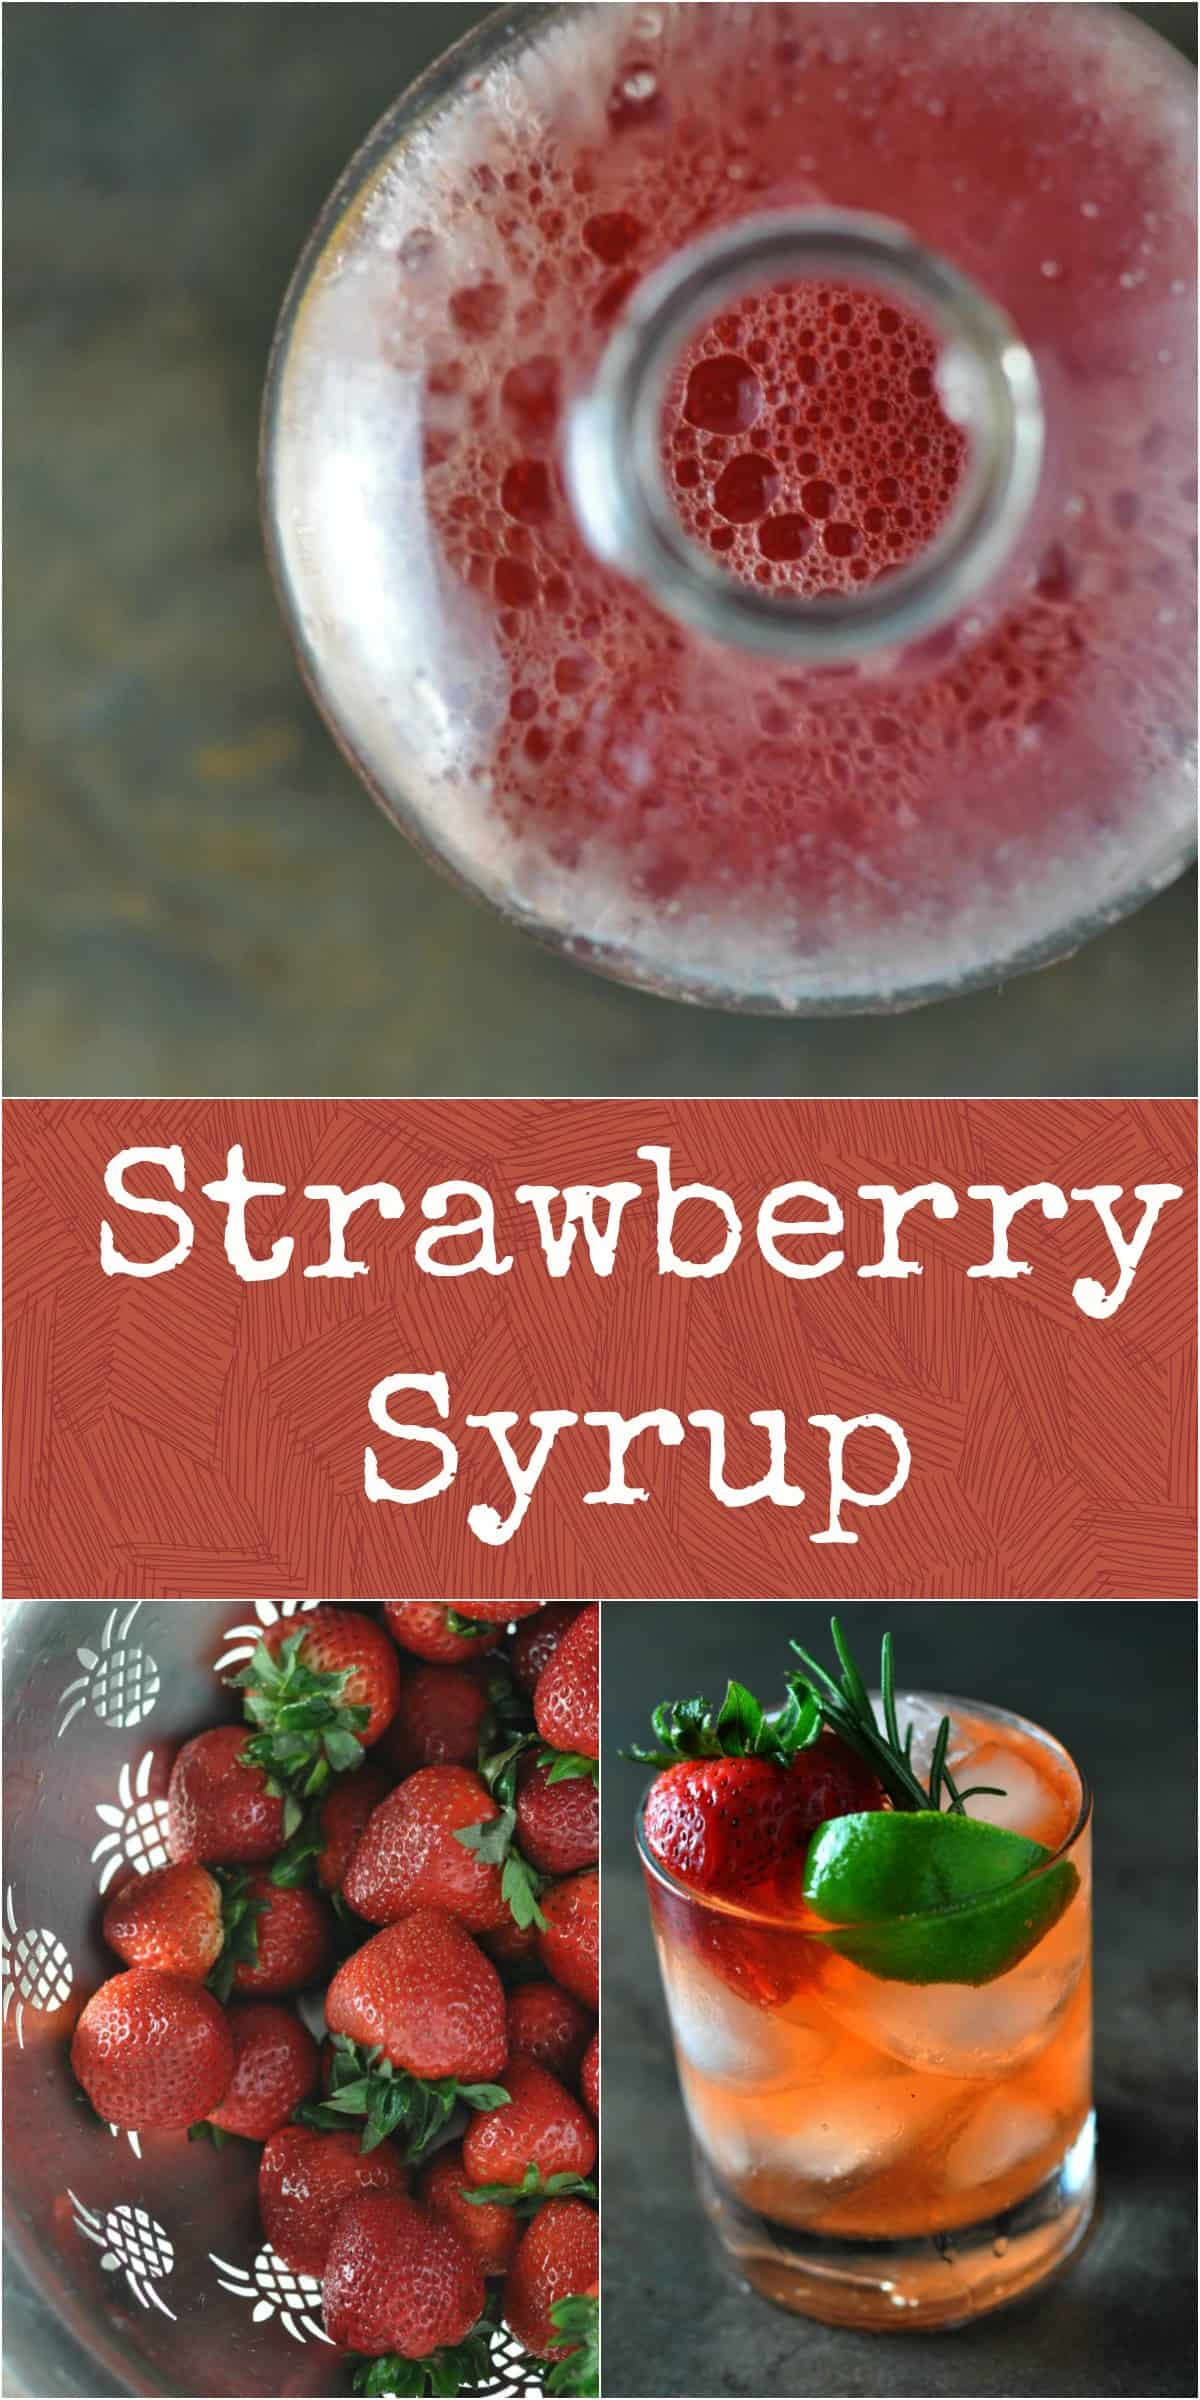 Strawberry Syrup - Dining with Alice